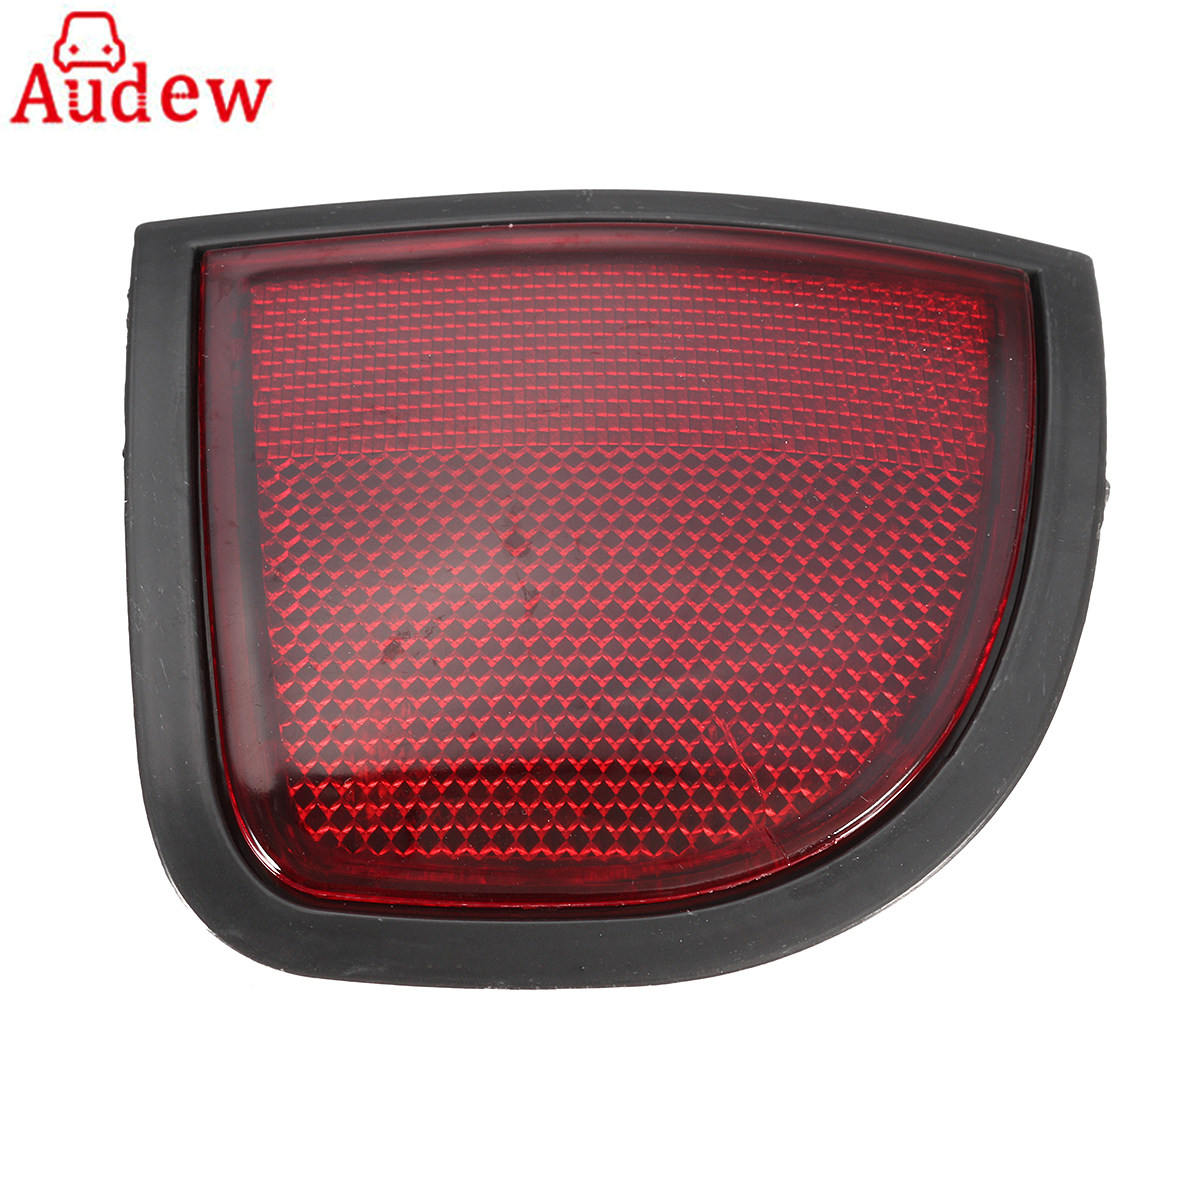 1Pcs  Left Reflector Light Car Rear Tail Bumper Reflector Light Fit for Mitsubishi L200